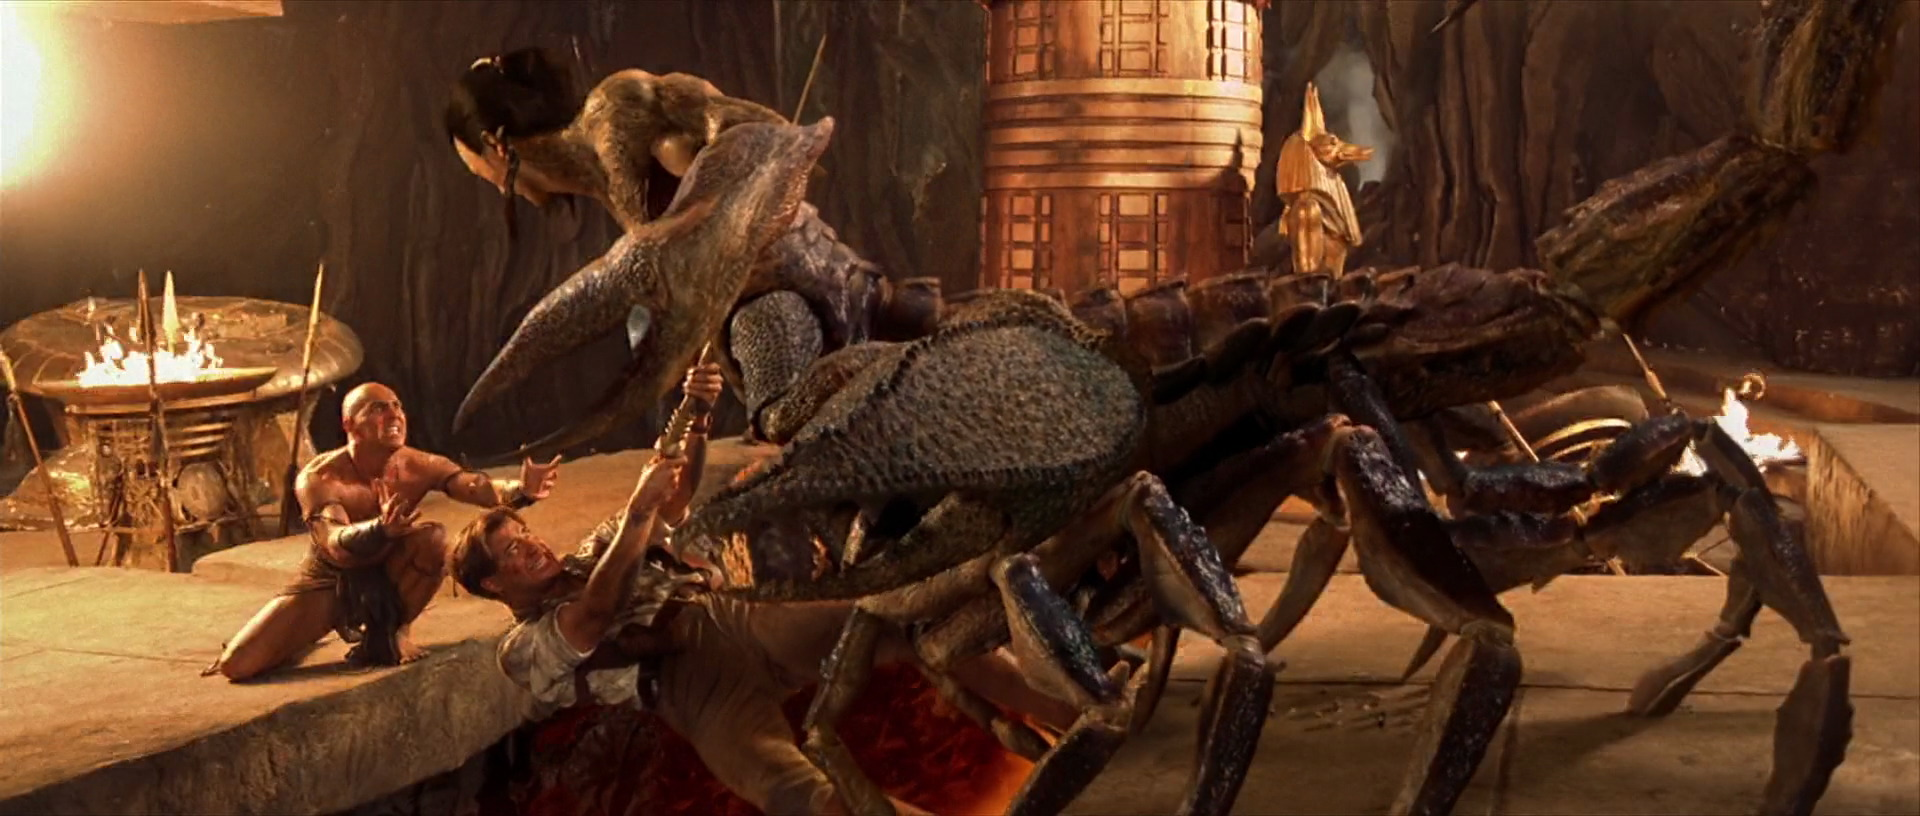 Image result for scorpion king